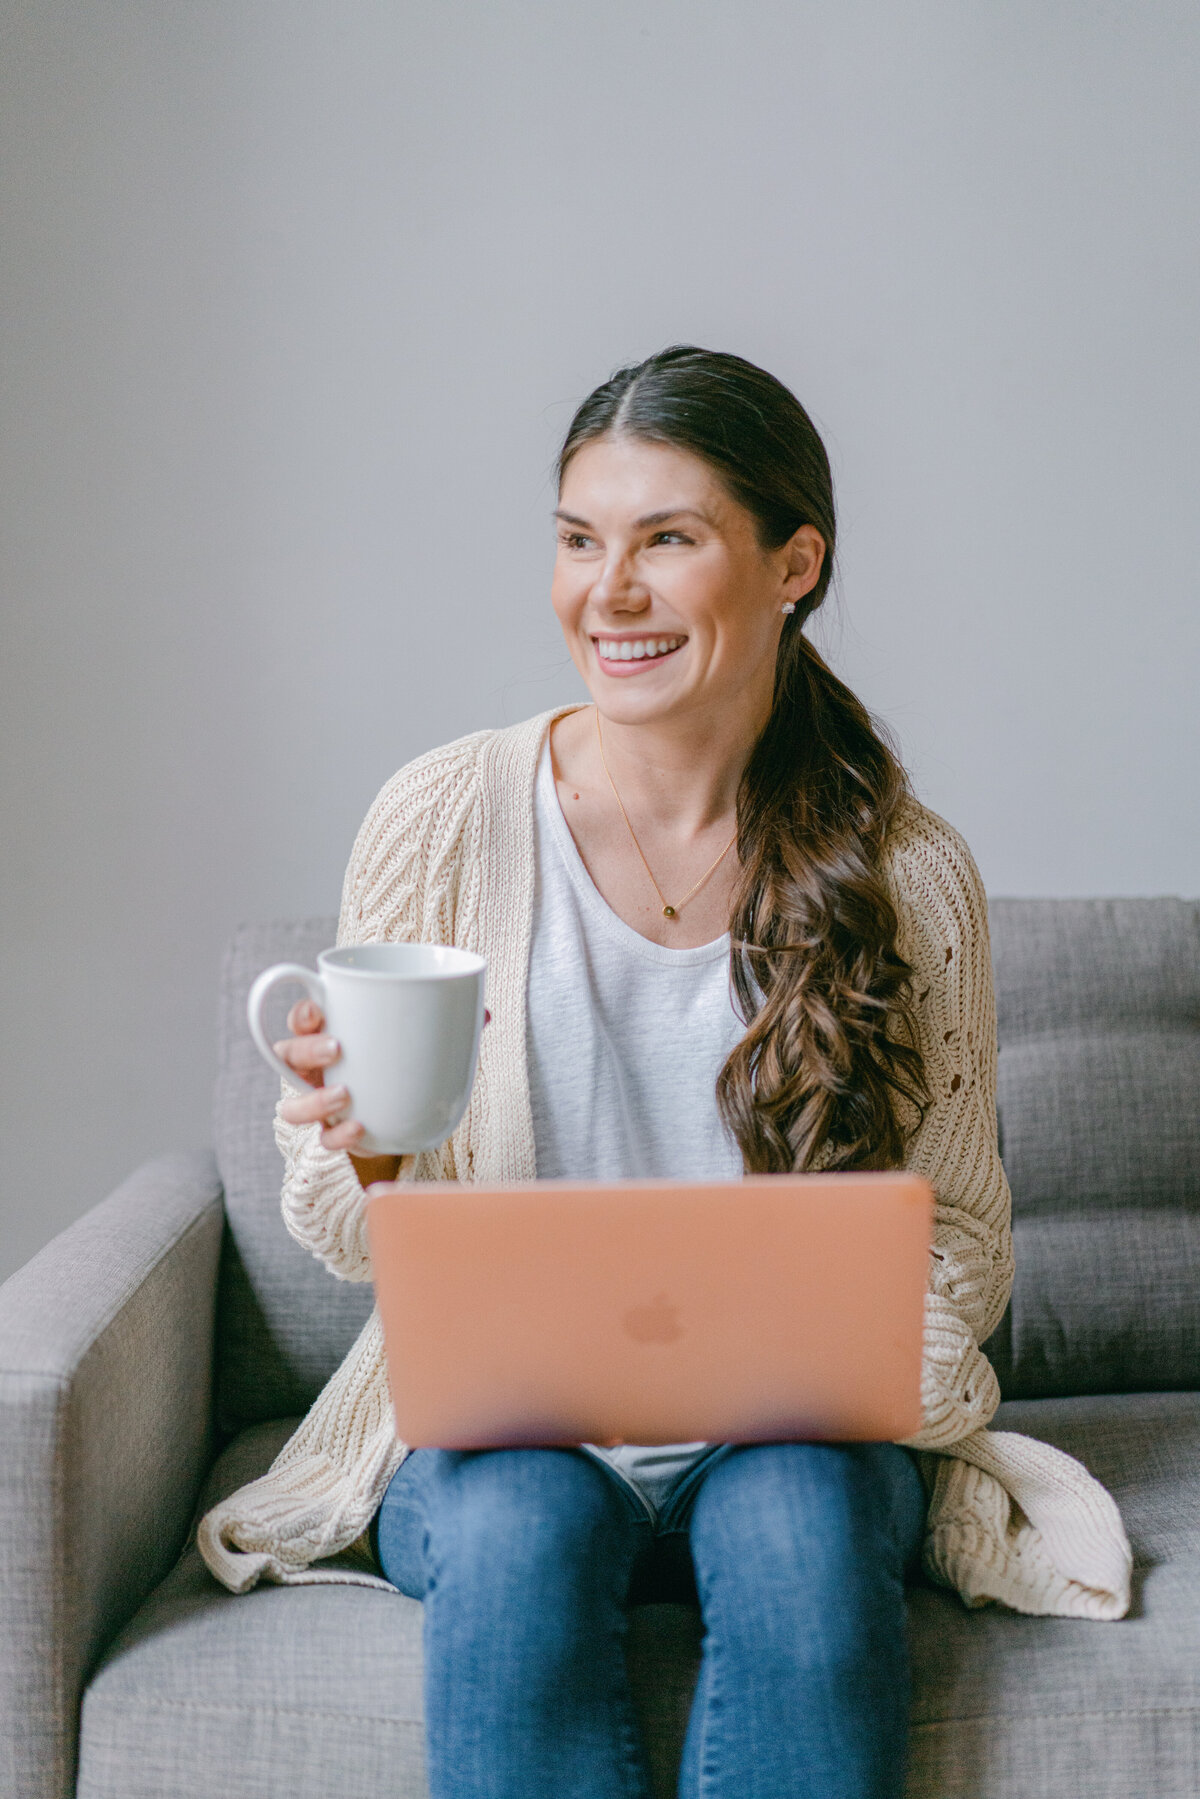 woman with a coffee cup in one hand and a laptop on her lap looking away from the camera and laughing